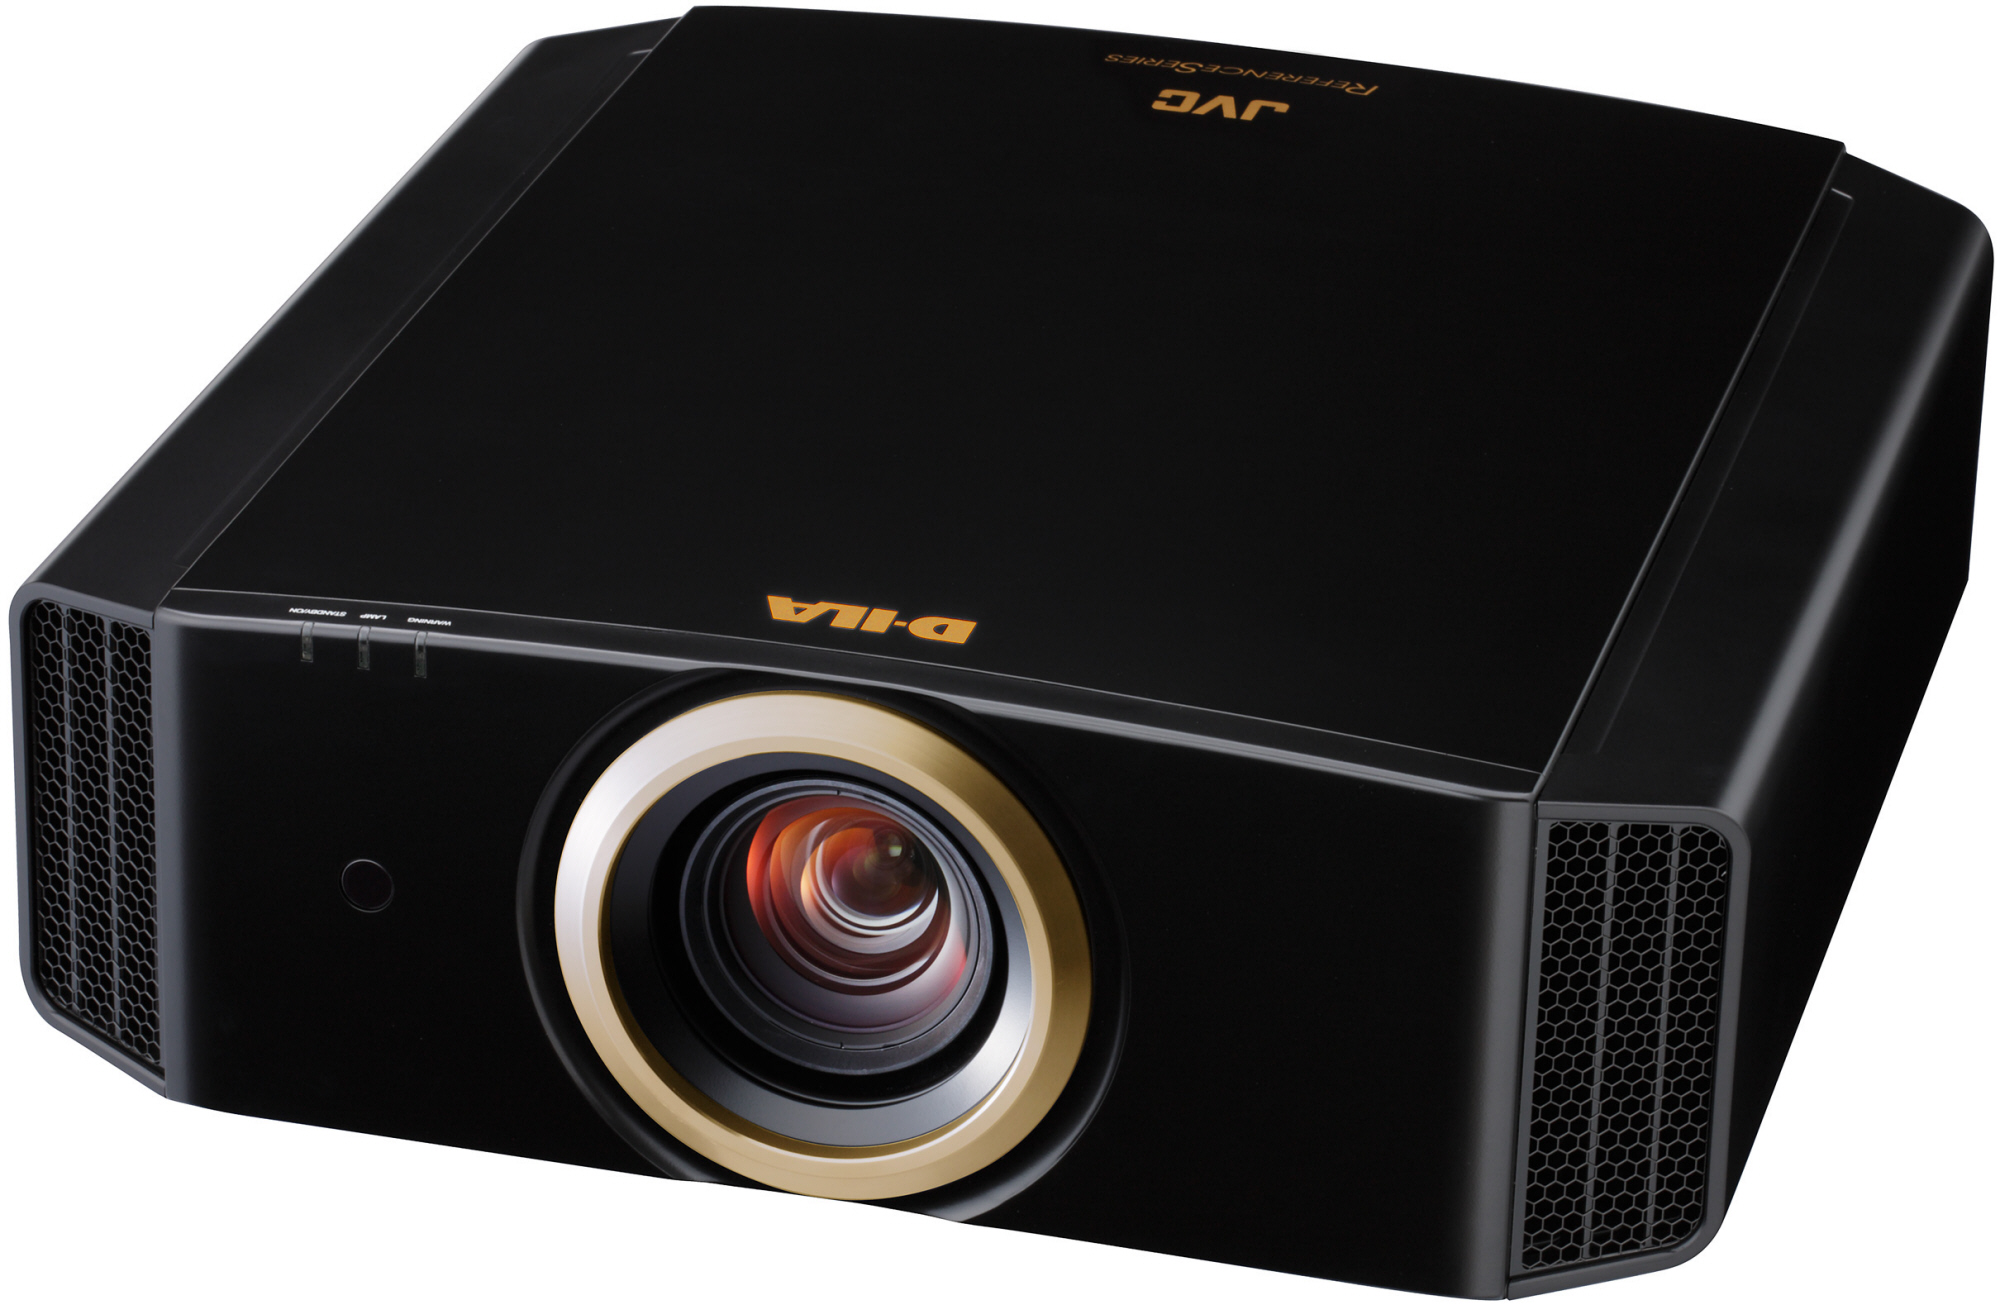 JVC DLA-RS6710 Home Theater Projector - $12,495